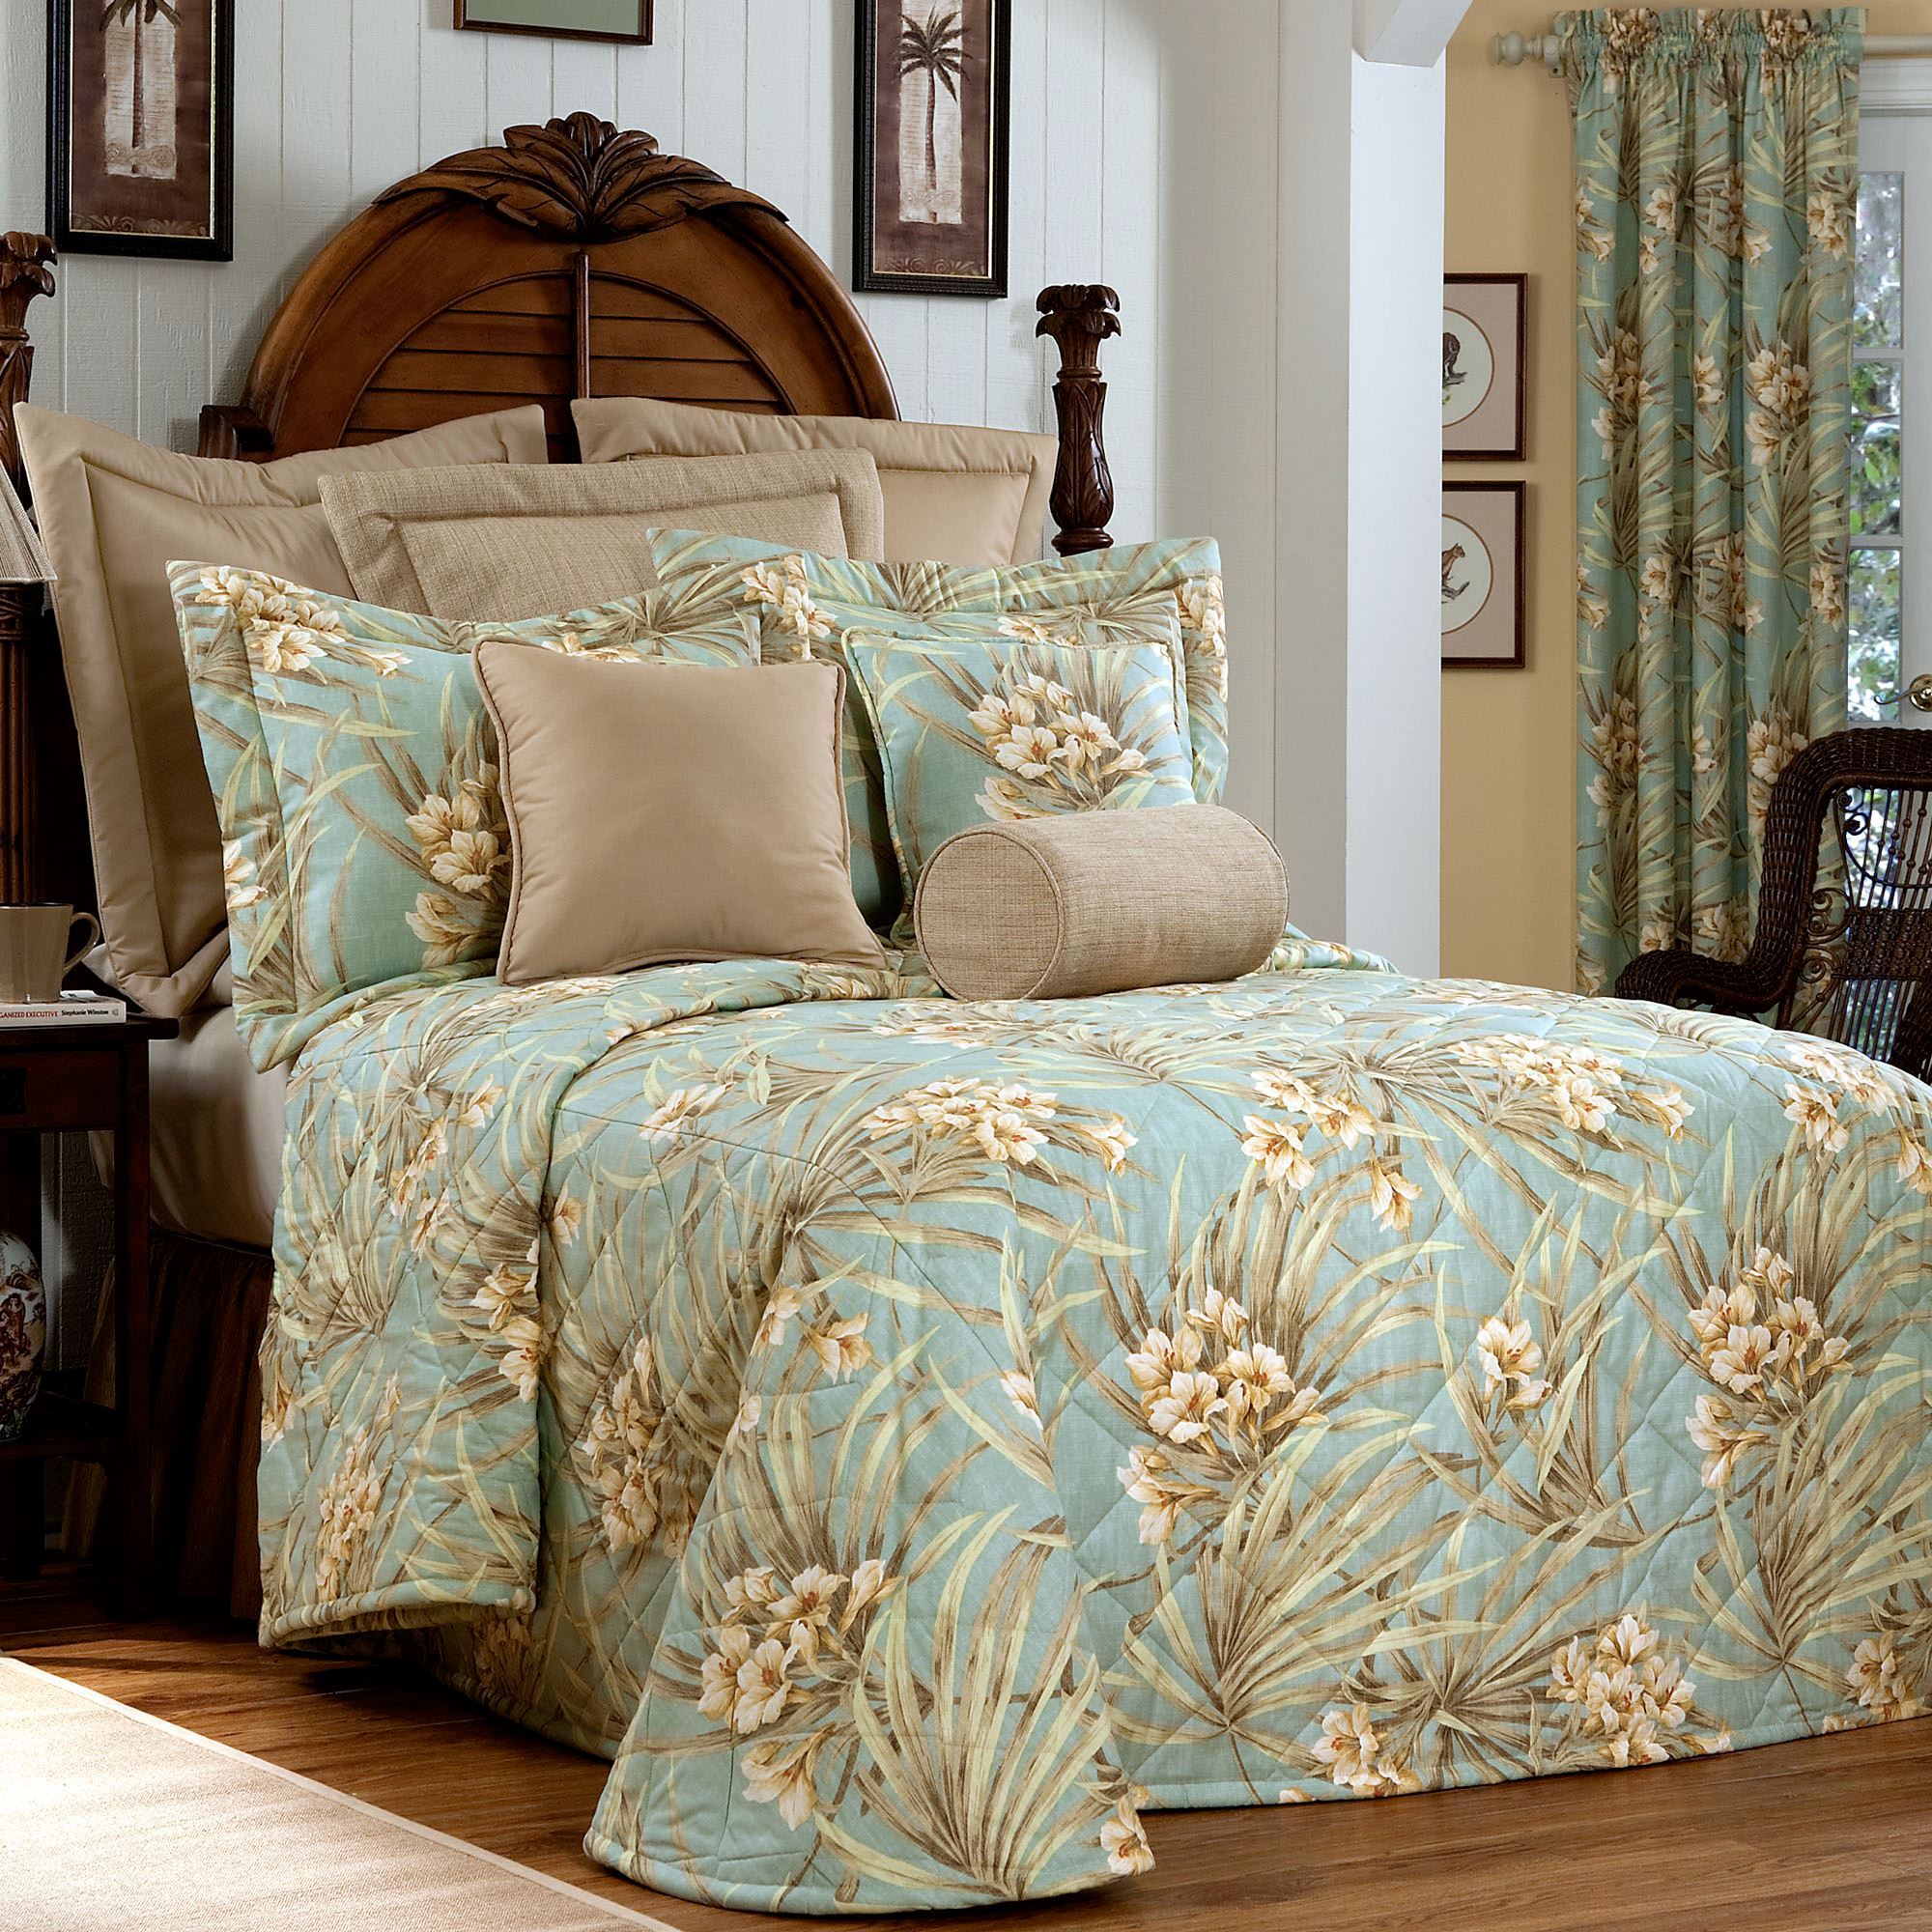 california furnishings piece comforter bedroom queen mesmerizing king for home galleria set your croscill discontinued bedding design bed